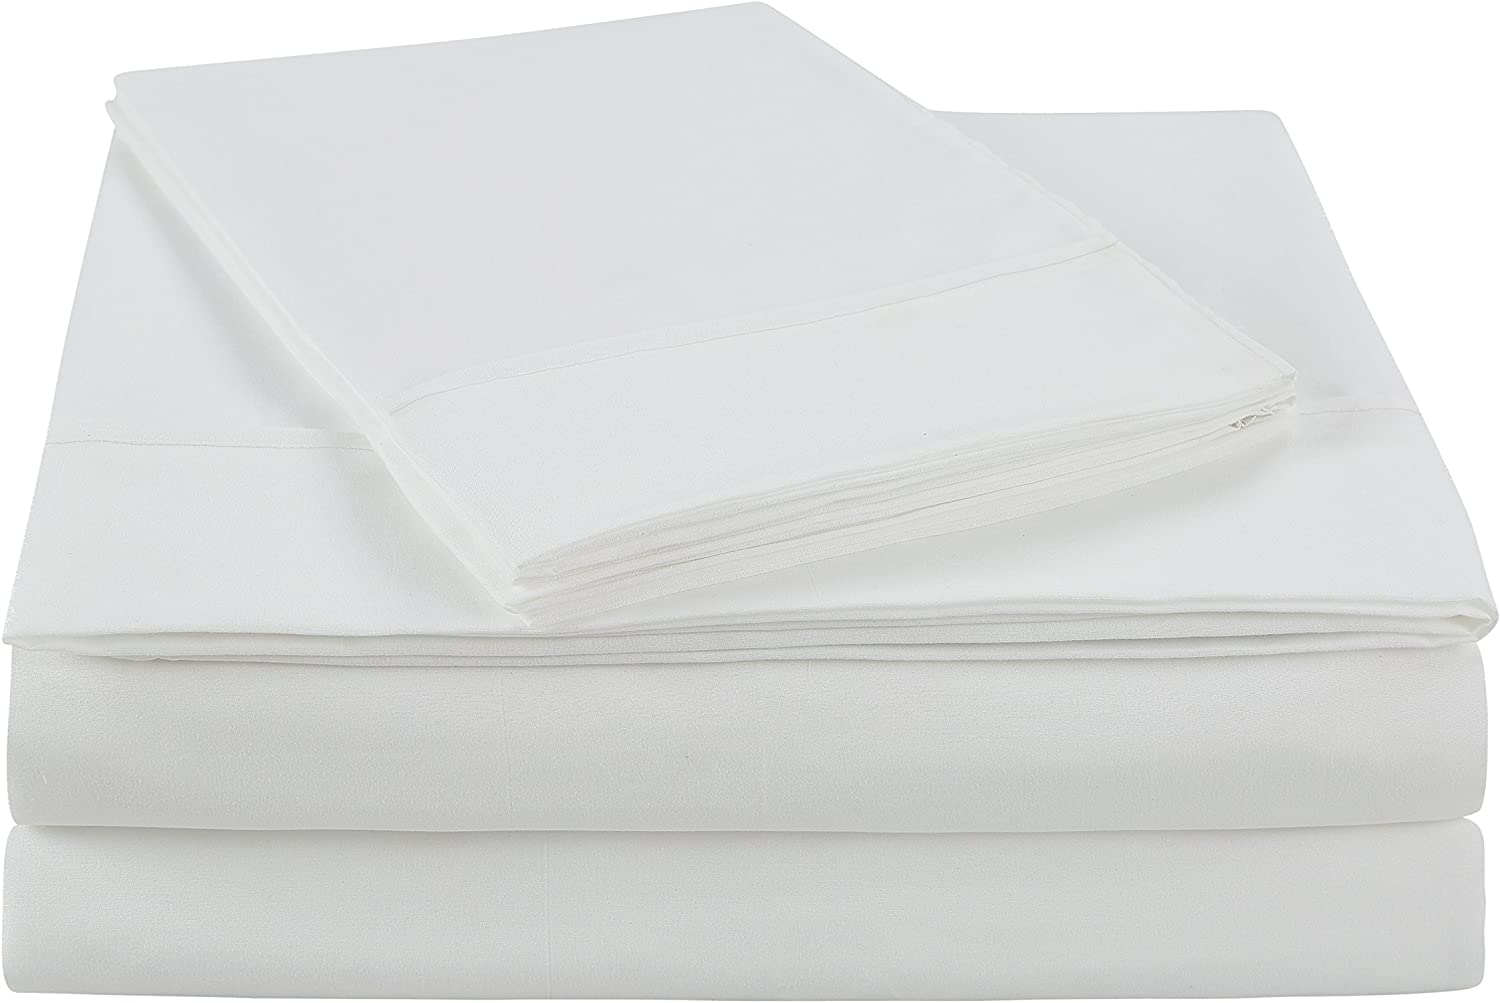 NC Home Fashions Ultra Soft Brushed Microfiber Solid Bed Sheet Set- Cotton Feeling-Deep Pockets - Easy Fit - Breathable & Cooling - Wrinkle, Fade, Stain Resistant-Twin XL, Bright White -3 Pieces